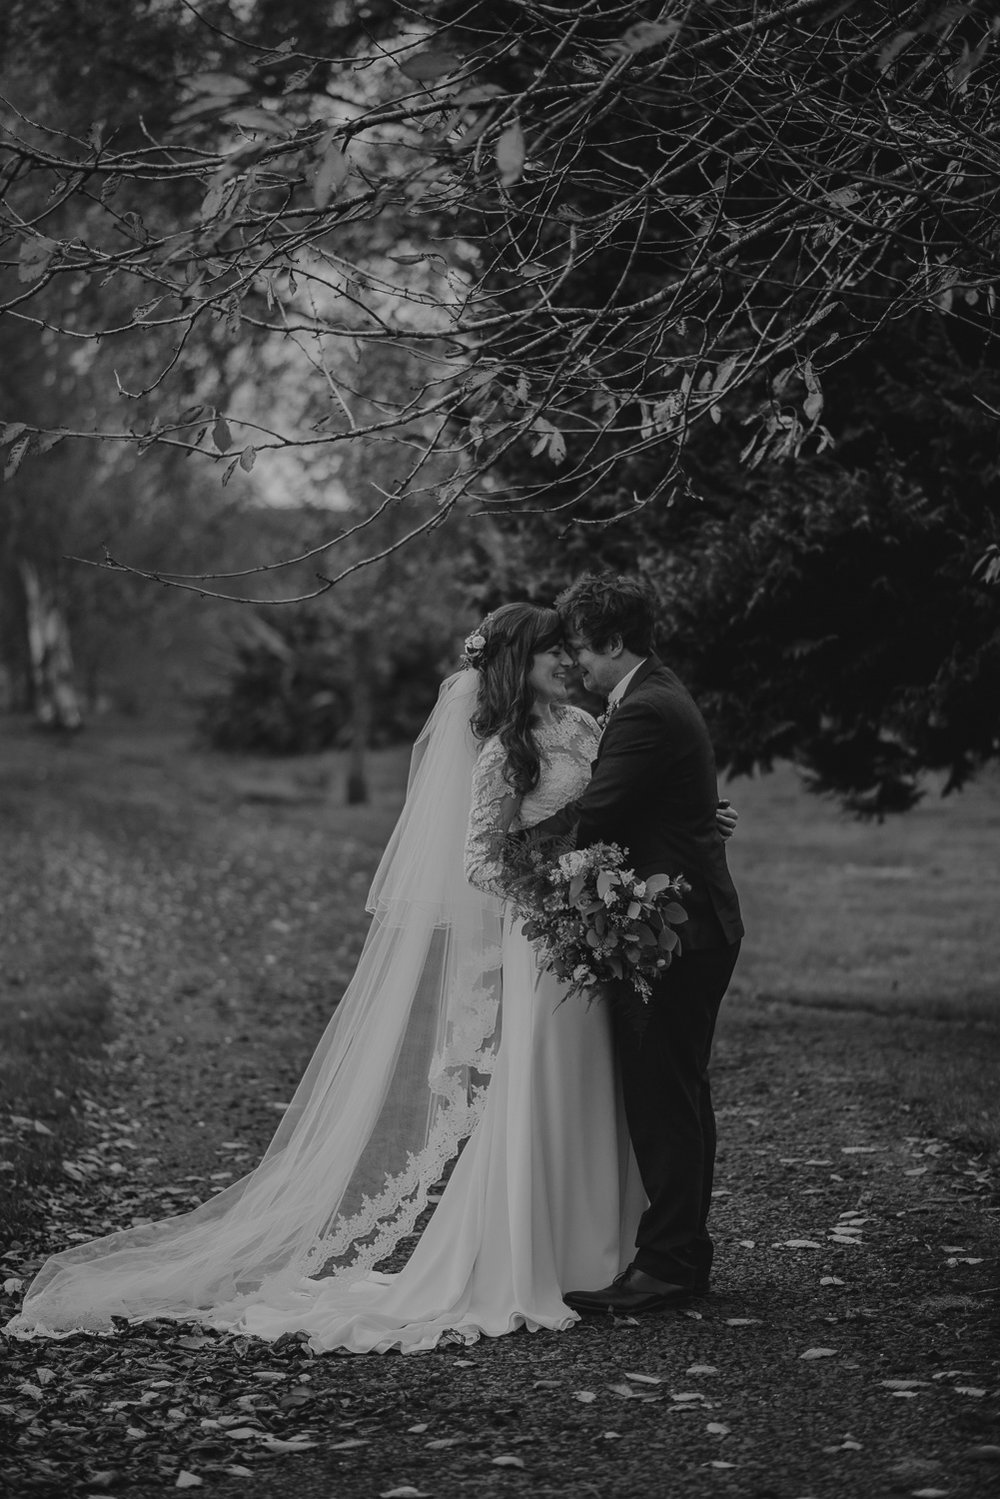 Gracehall wedding photography | Esther Irvine-46.jpg